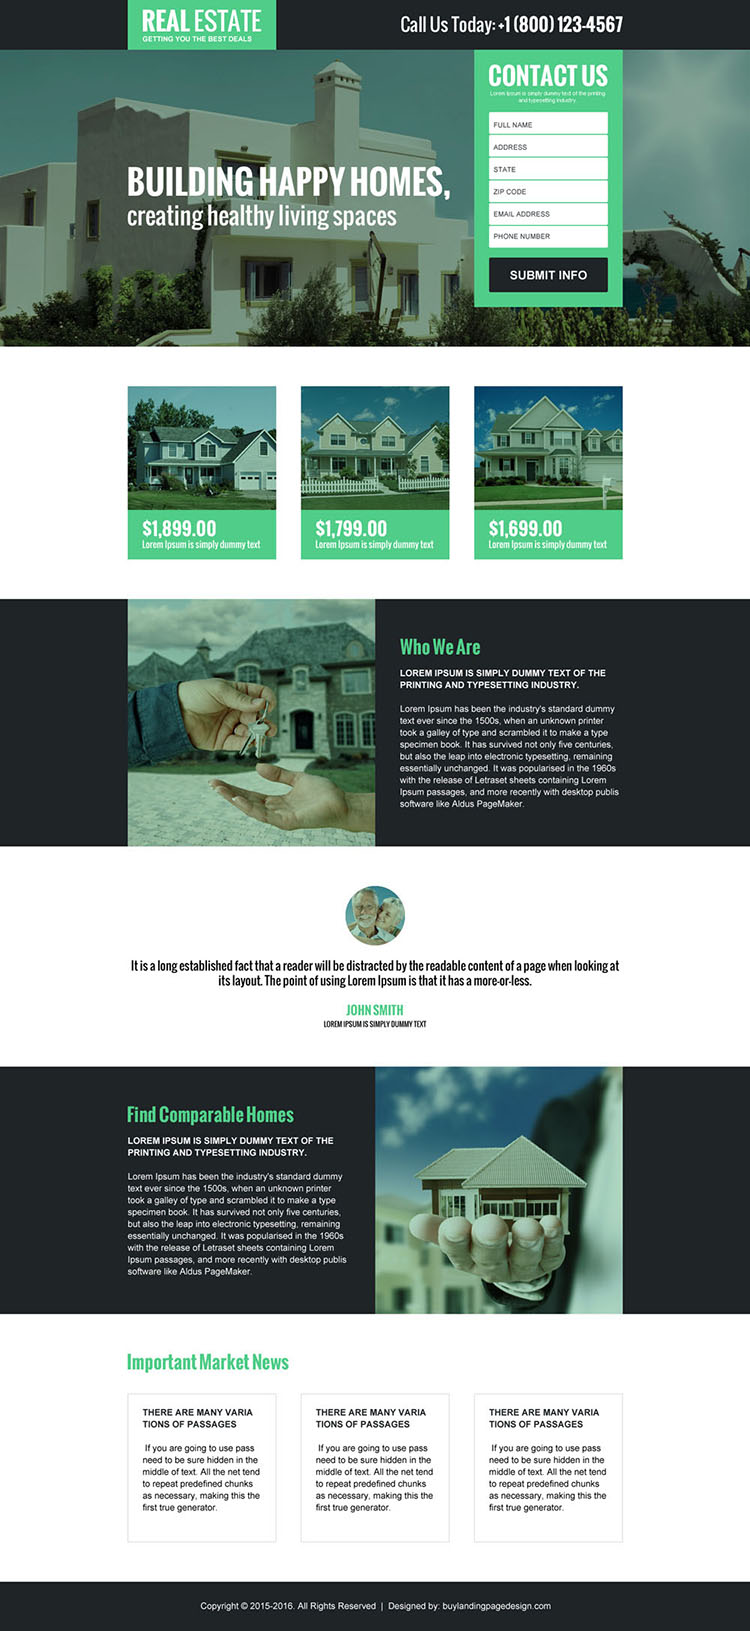 real estate best deal lead generating landing page design